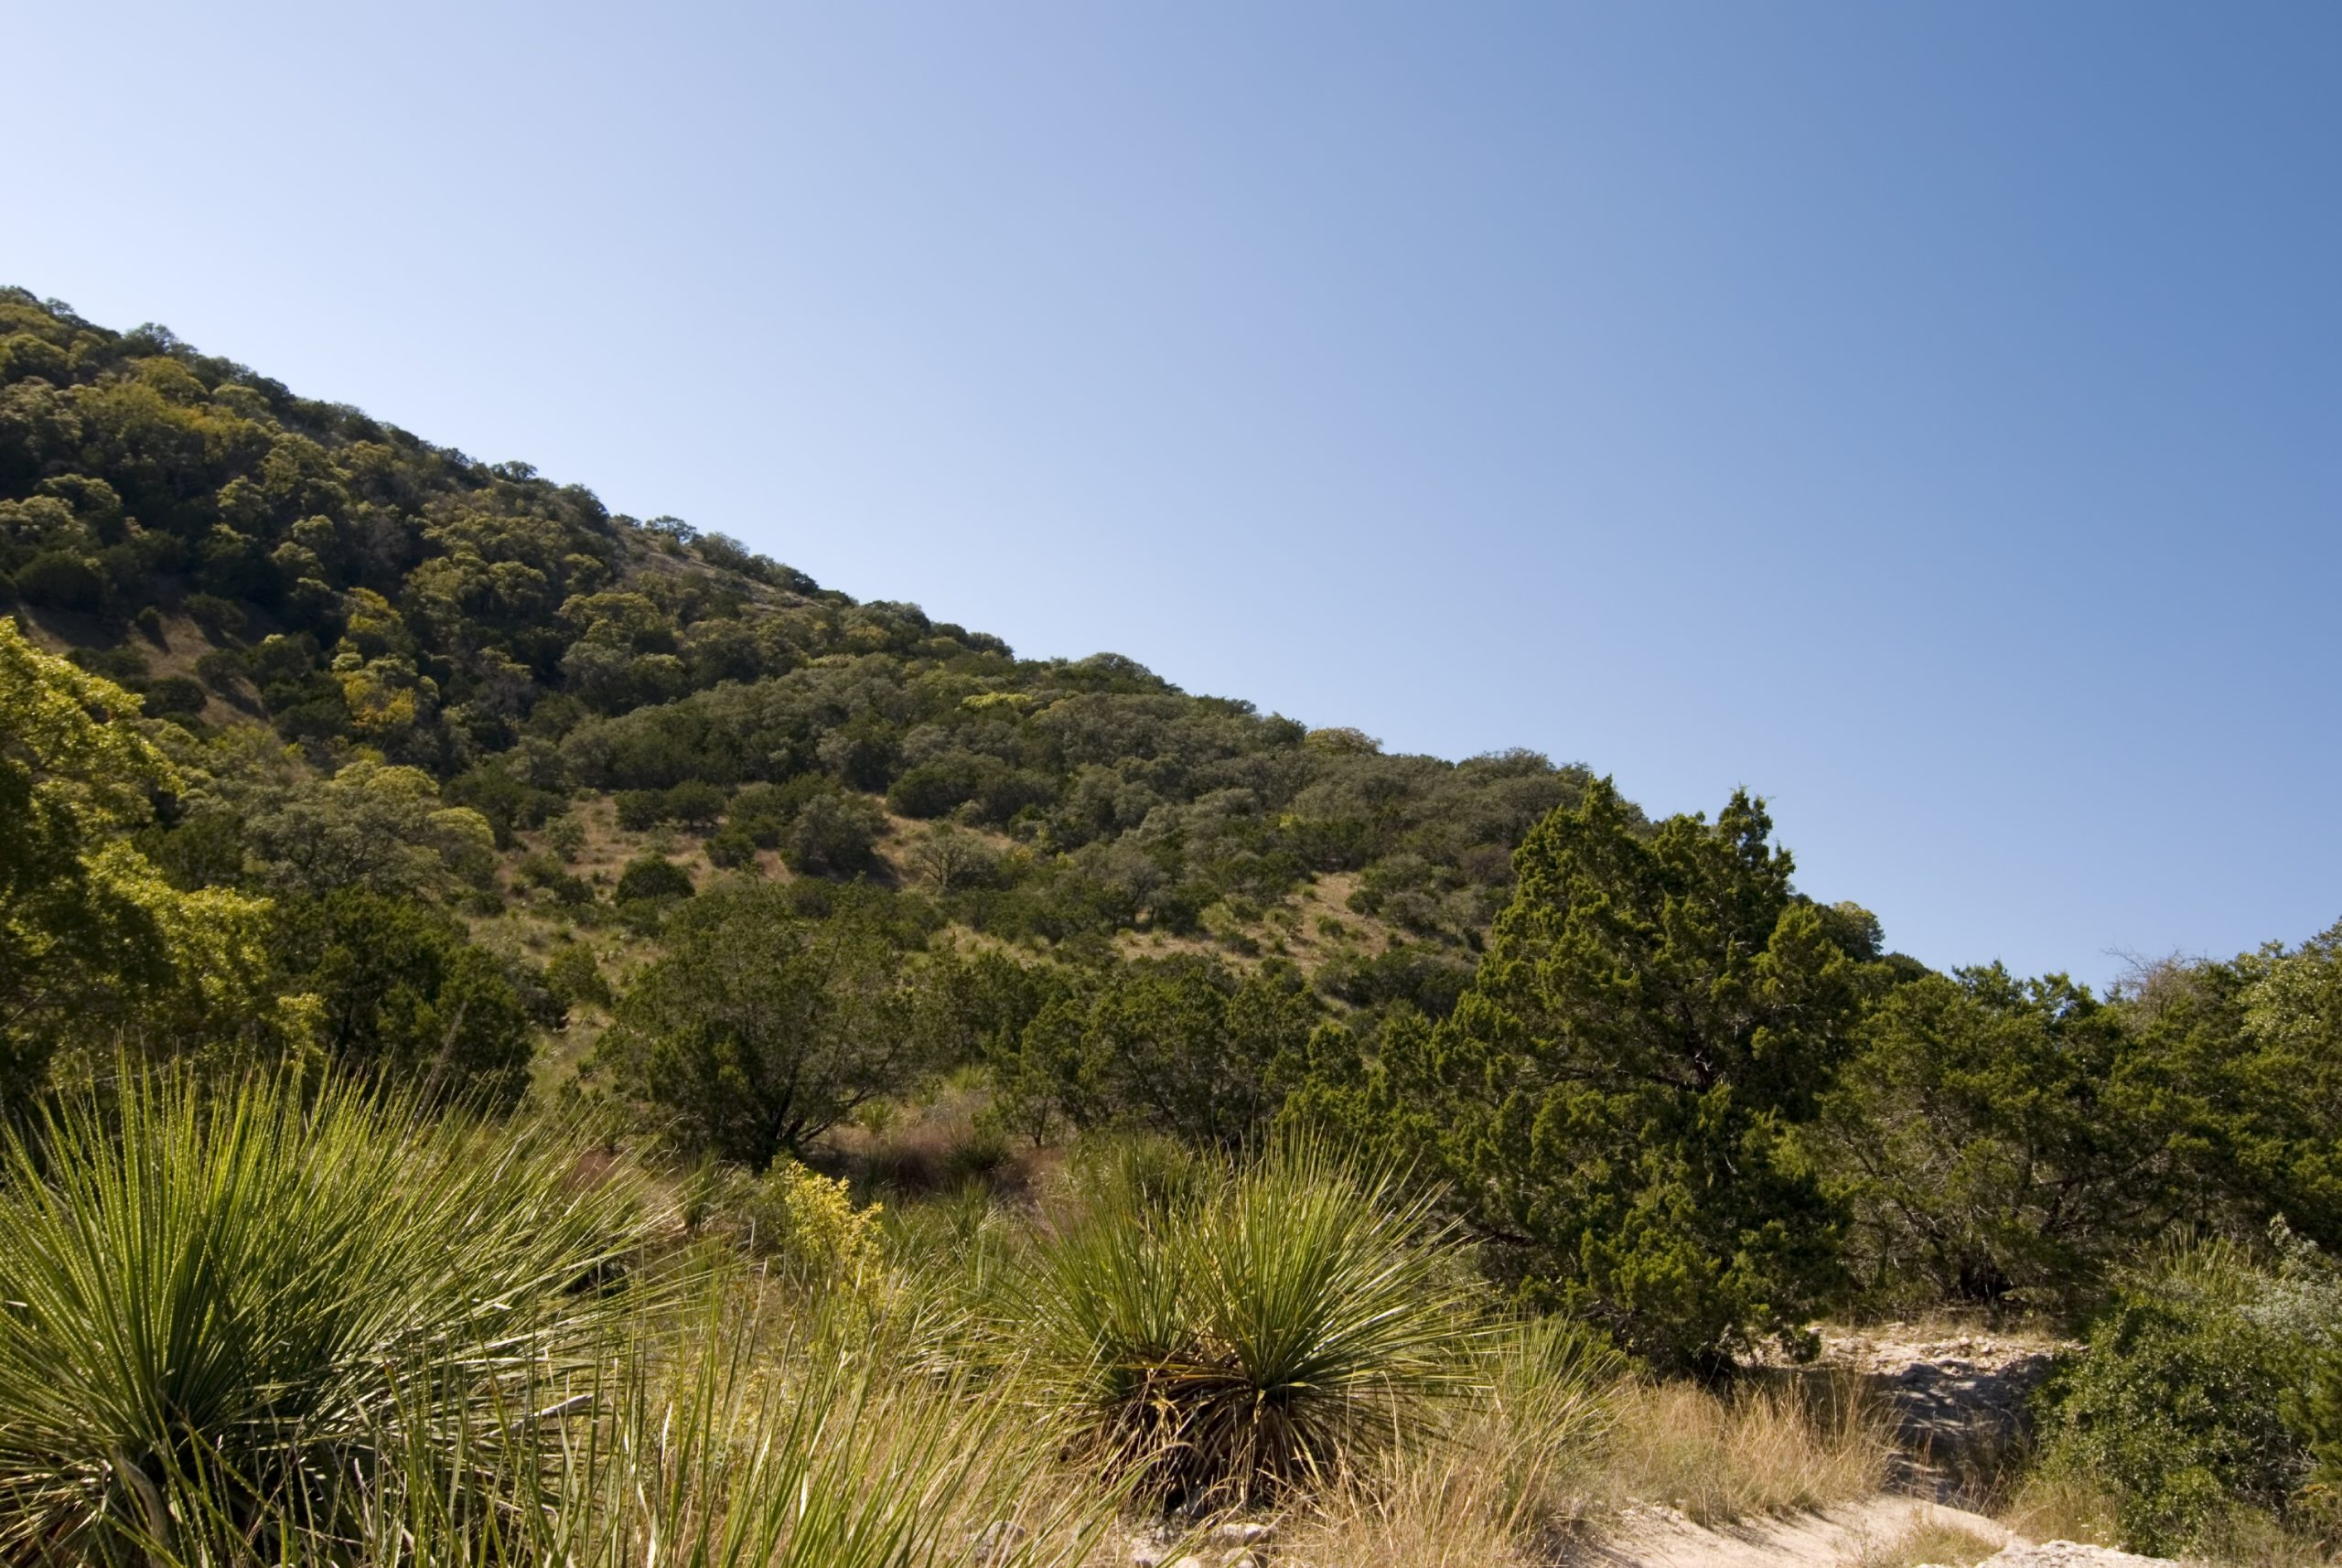 views of the texas hill country when hiking near san antonio texas under a bright blue sky